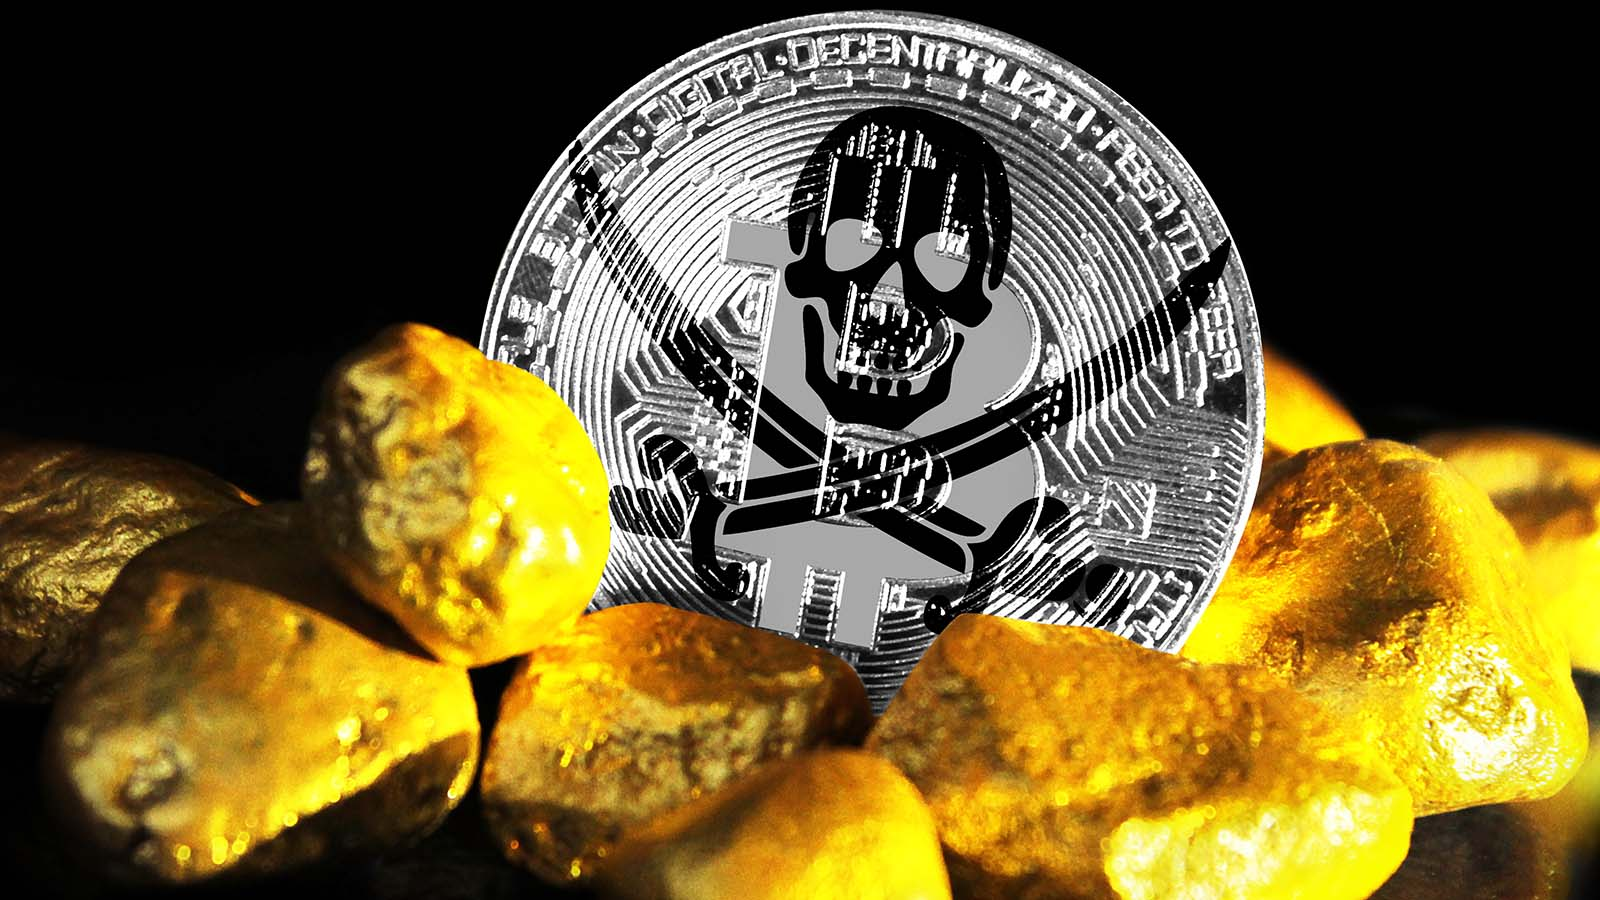 Pirate Chain (ARRR) Price Predictions: Where Will the ARRR Crypto Go After Sky-High Gains?